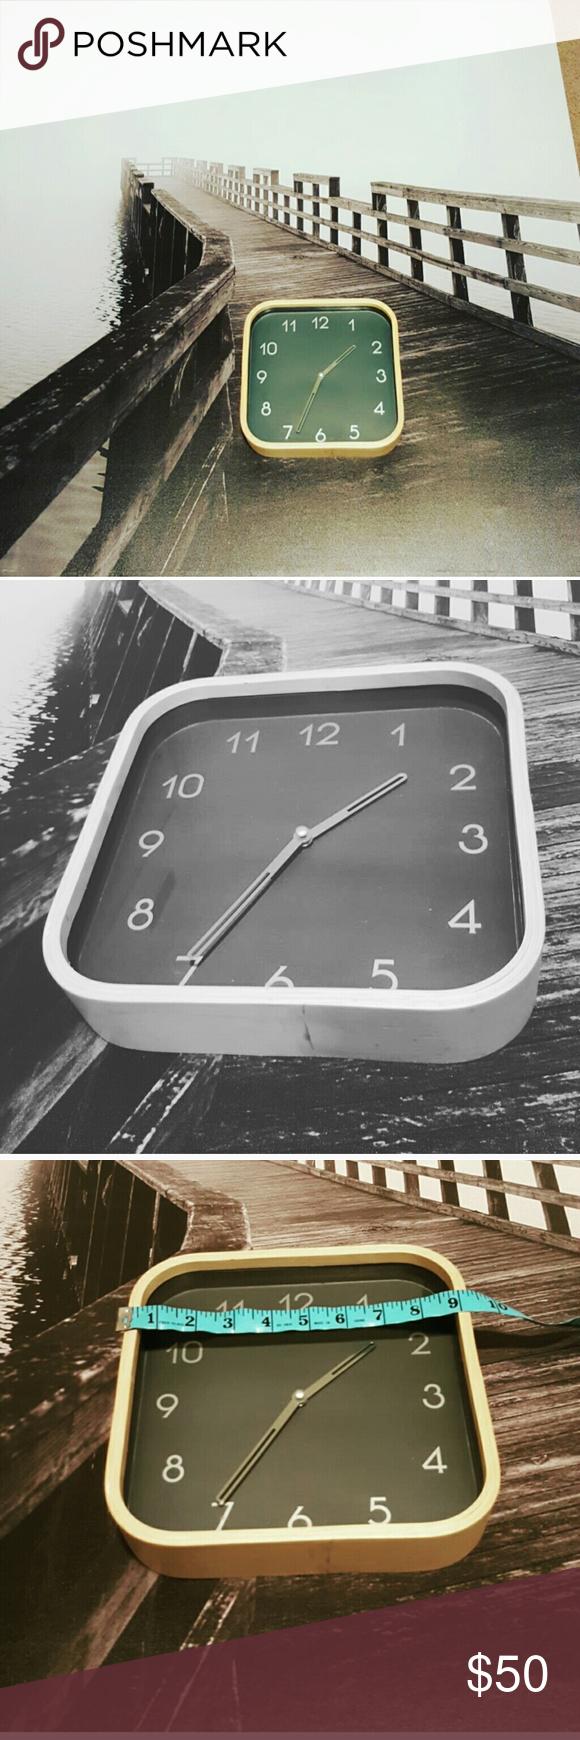 Very Modern wood  Clock This Tid Solid Wood Mantel Clock is with a white face and wooden hands. The white face and hands lighten the effect, and lend a coolness to lift the aesthetic into the modern. Europe Accessories Watches